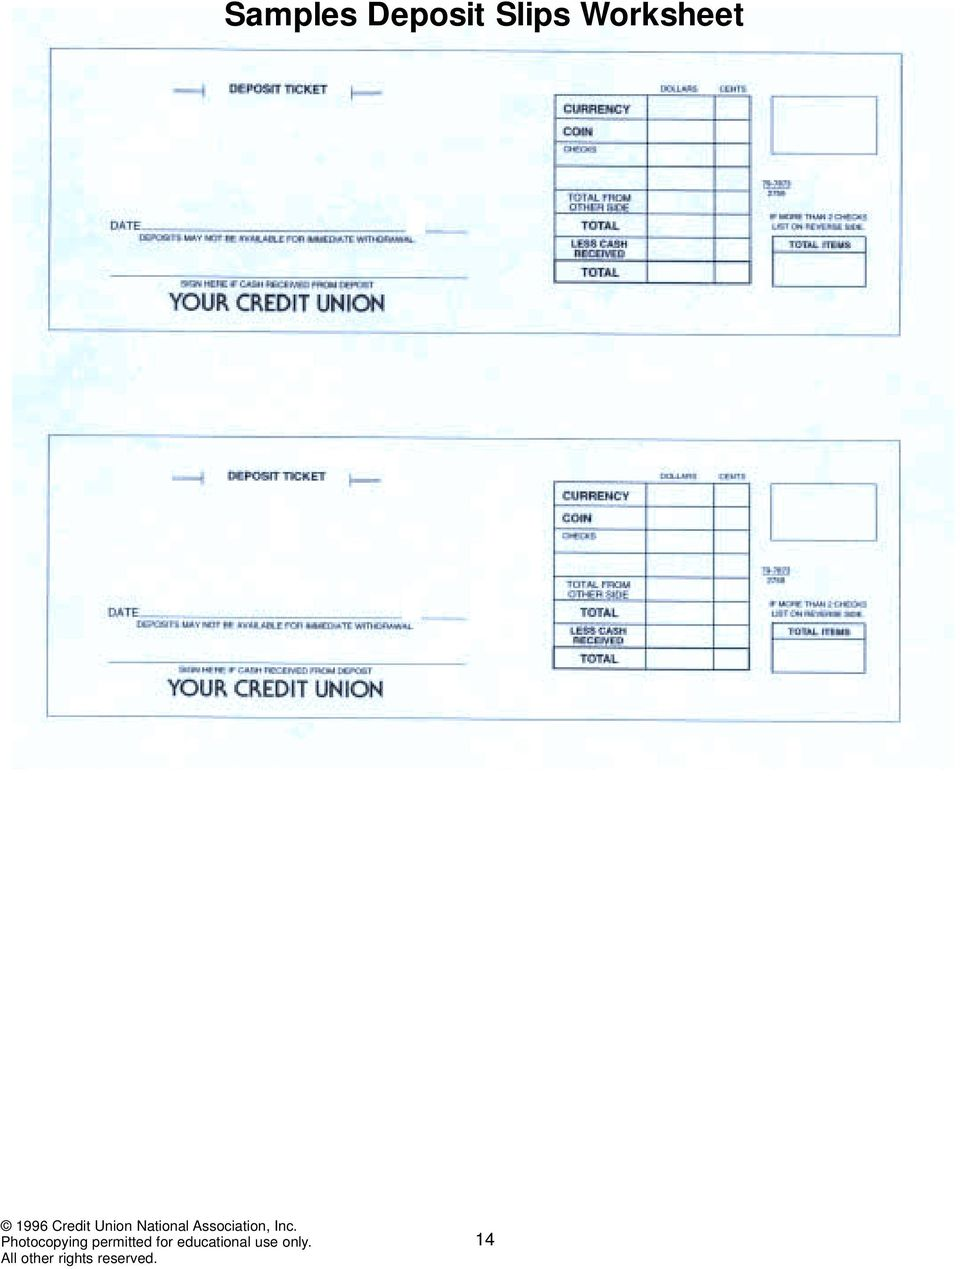 worksheet Check Register Worksheet share draftchecking account basics pdf 15 sample checkbook register worksheet checks how to use a for each check you write immediately enter the following in appropriate